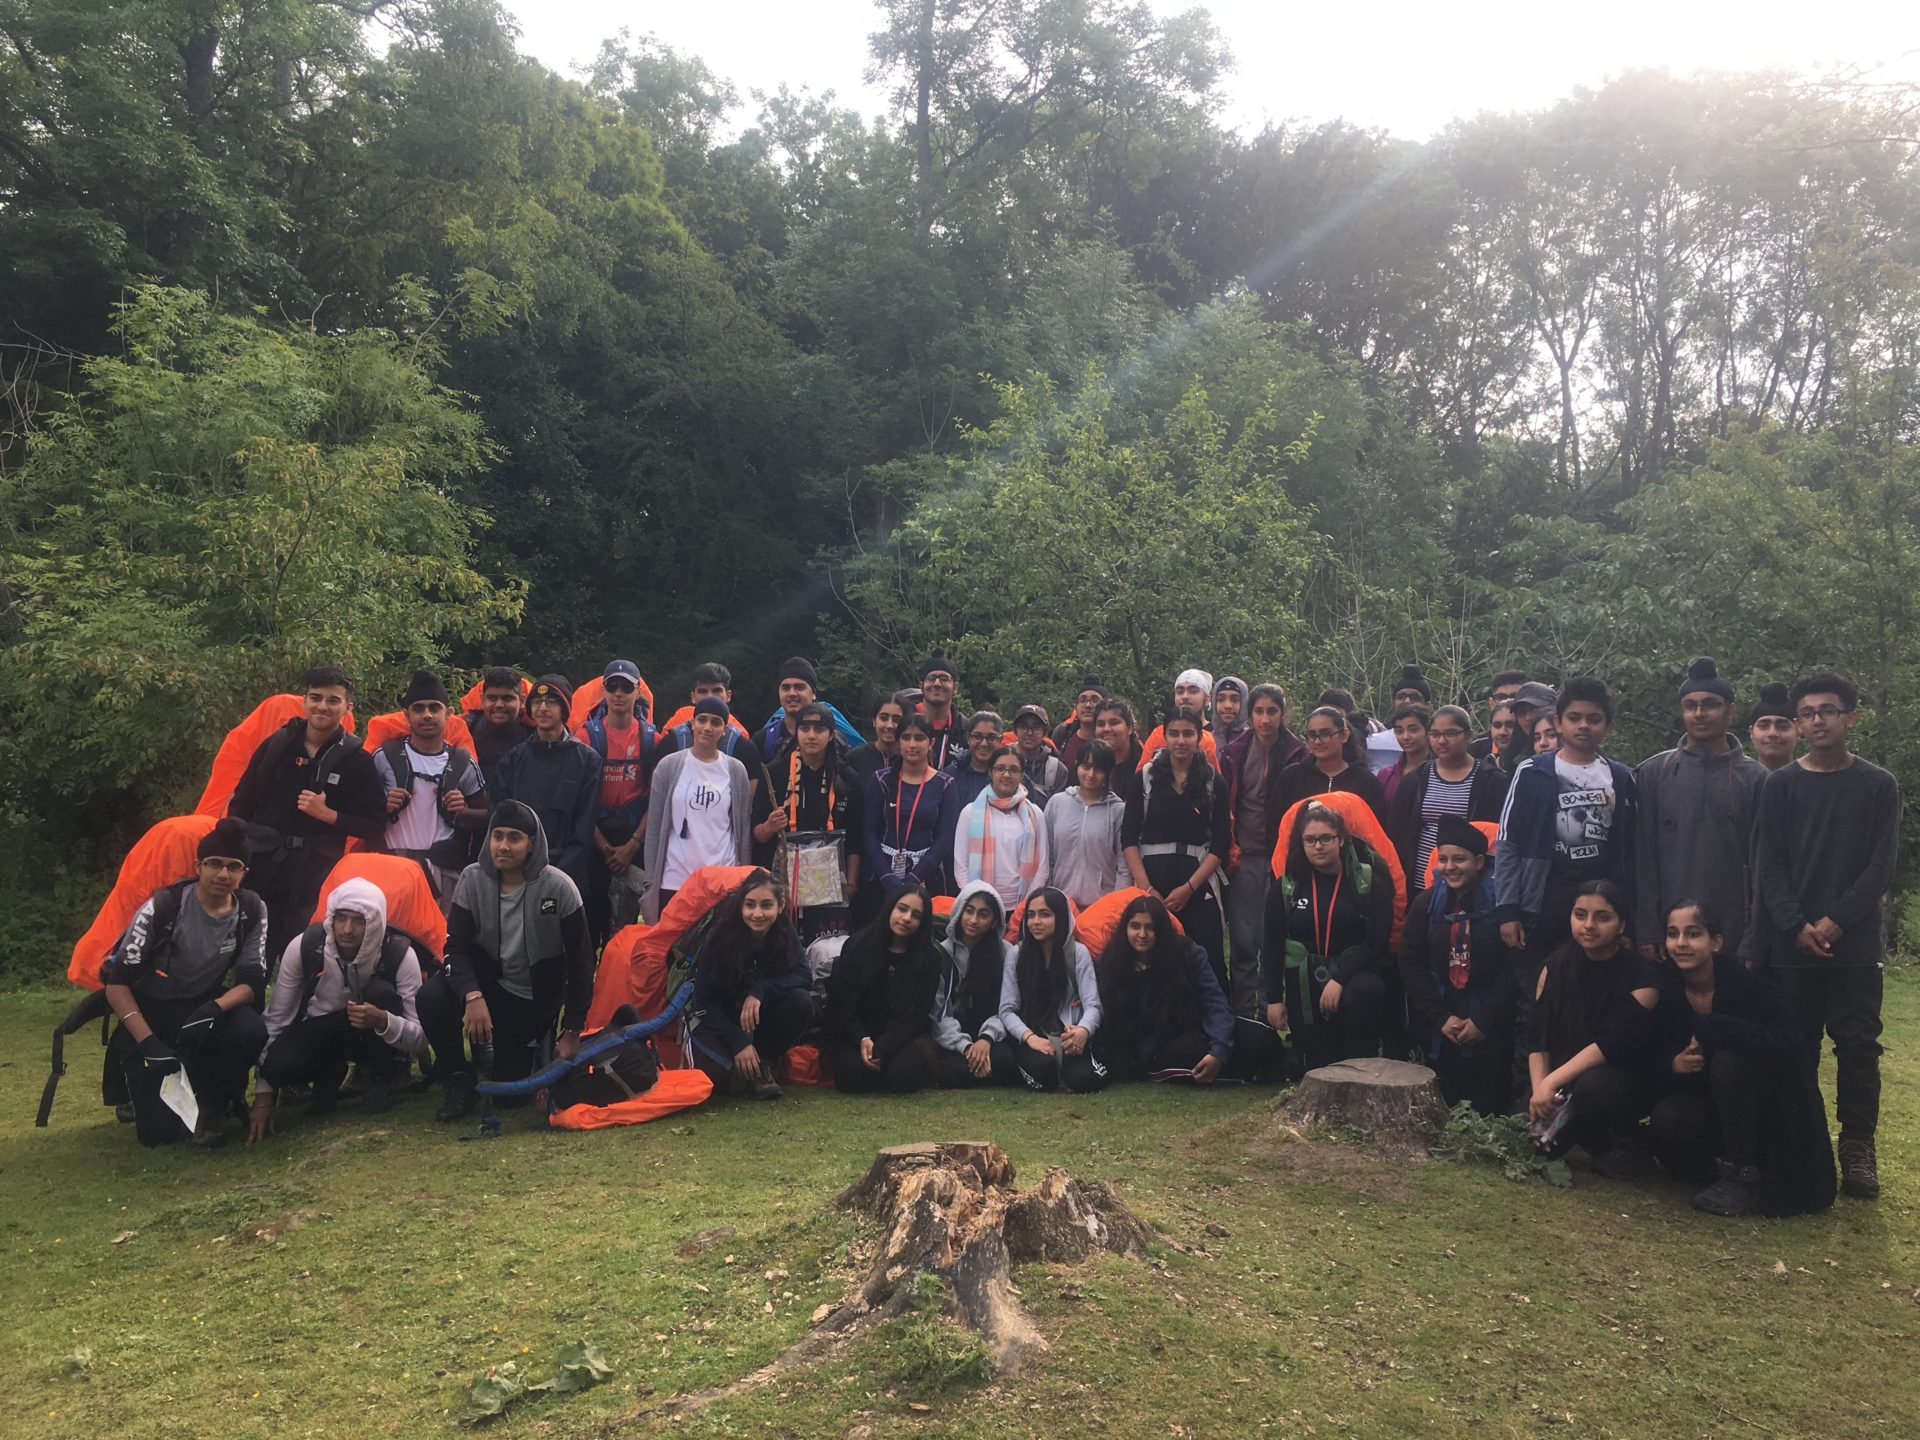 DofE Approved Activities Provider